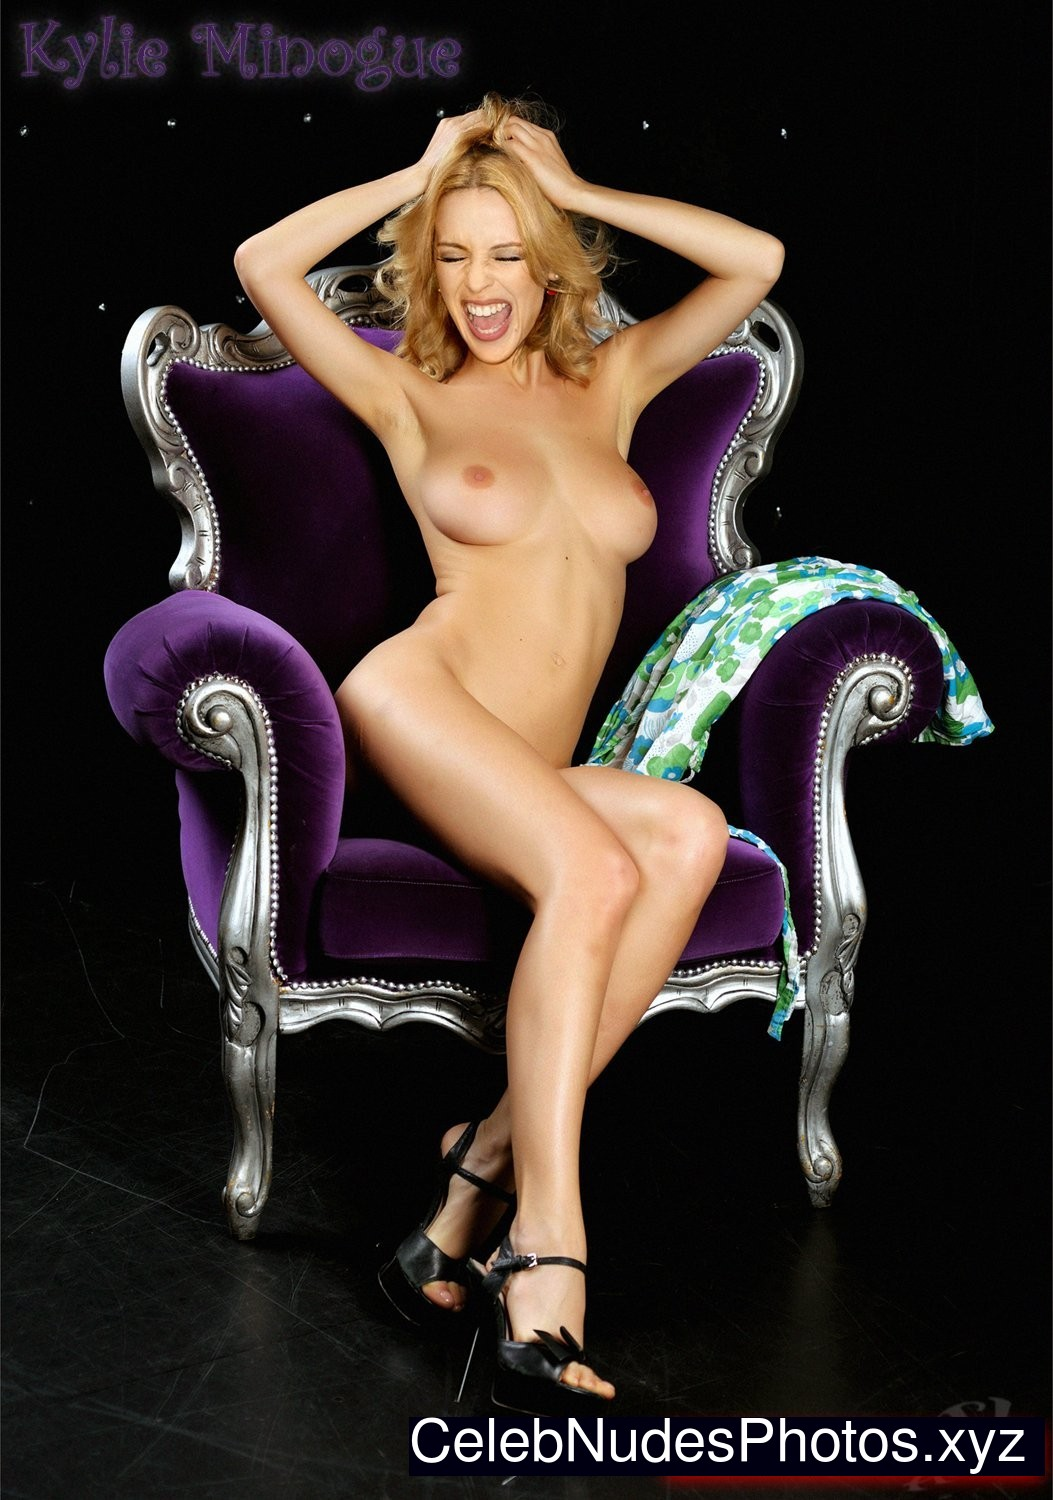 Regret, naked kylie minogue nude seems excellent